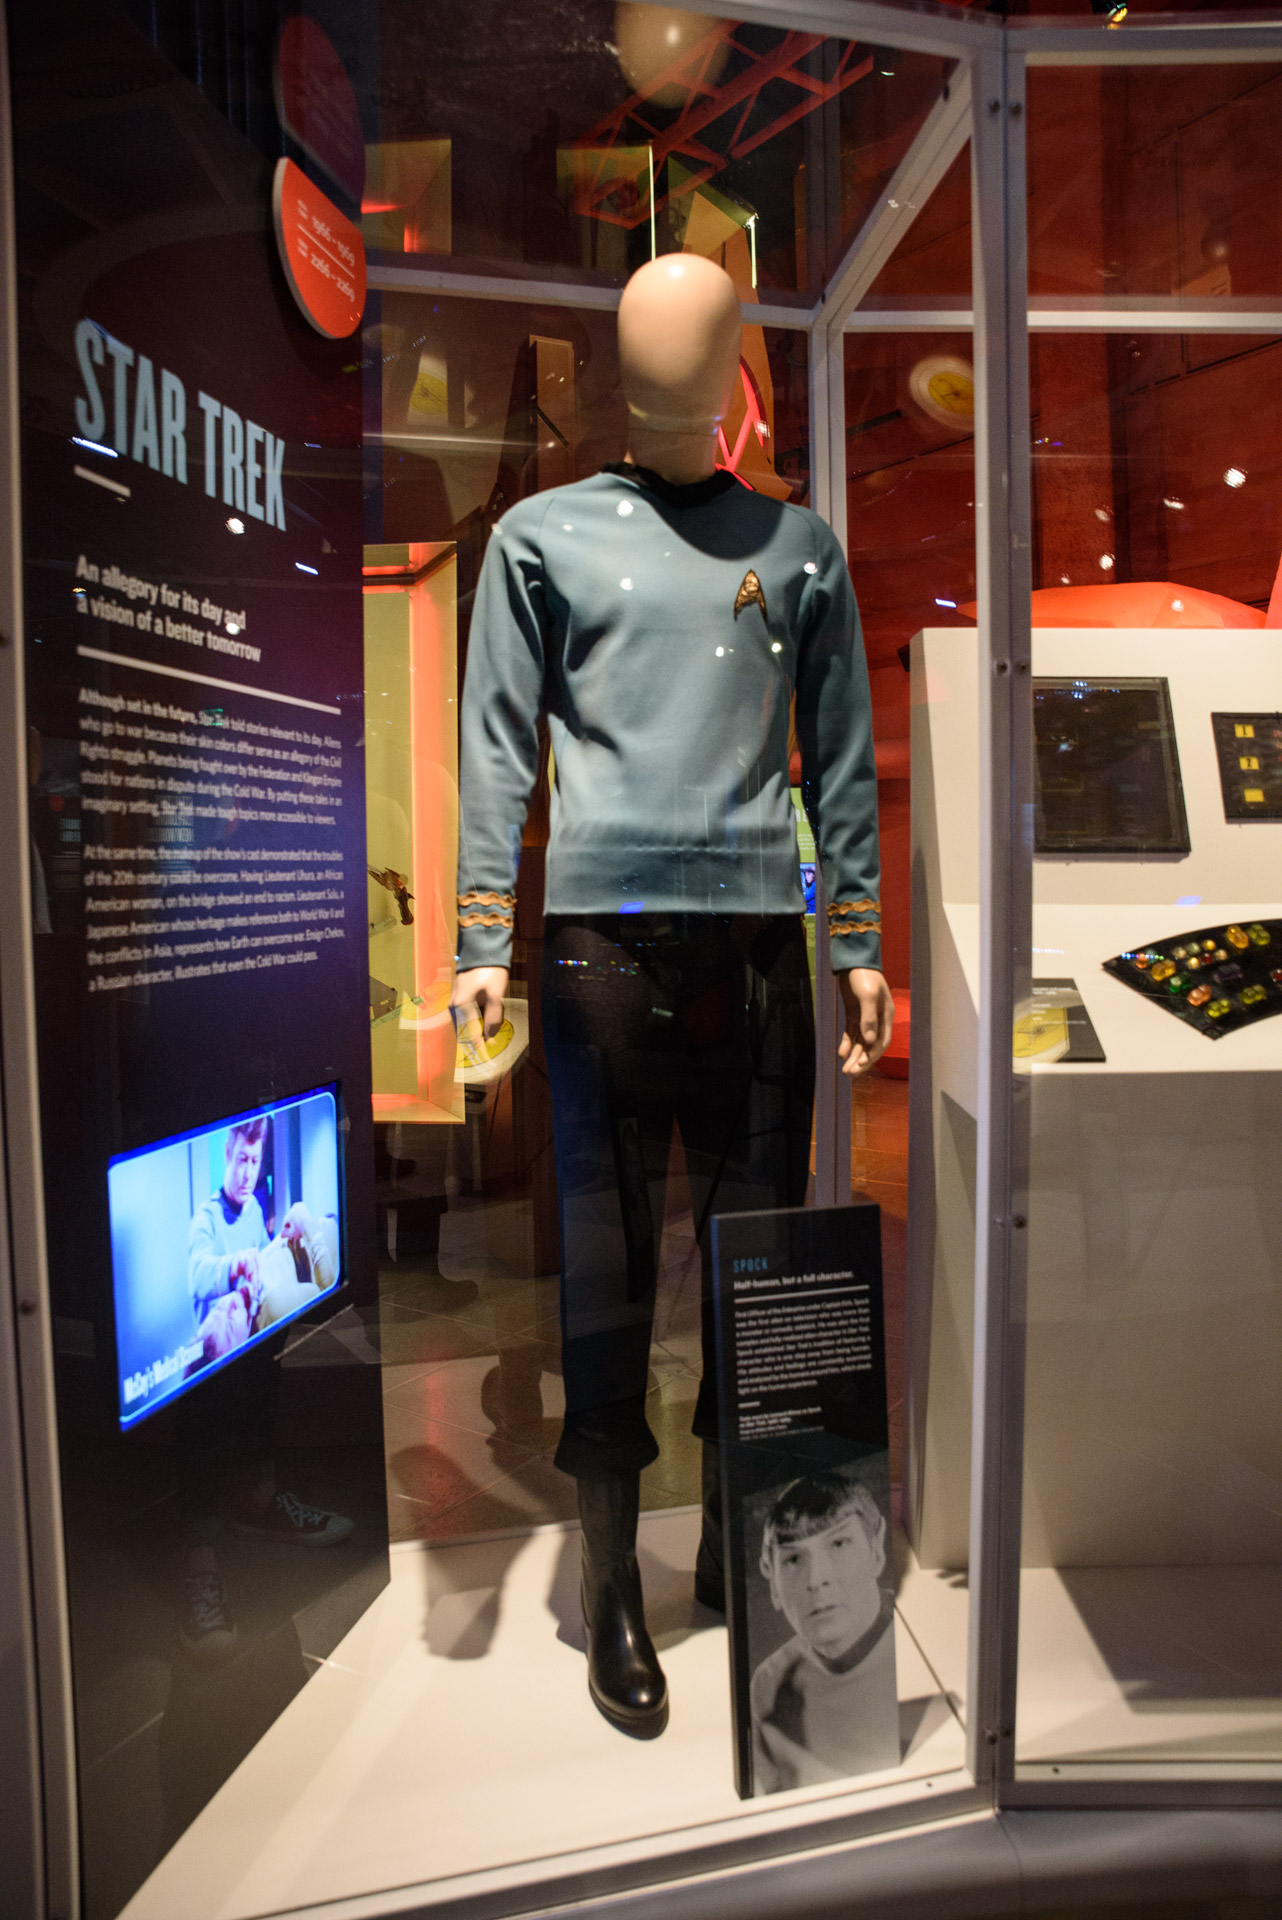 star trek exhibit edg